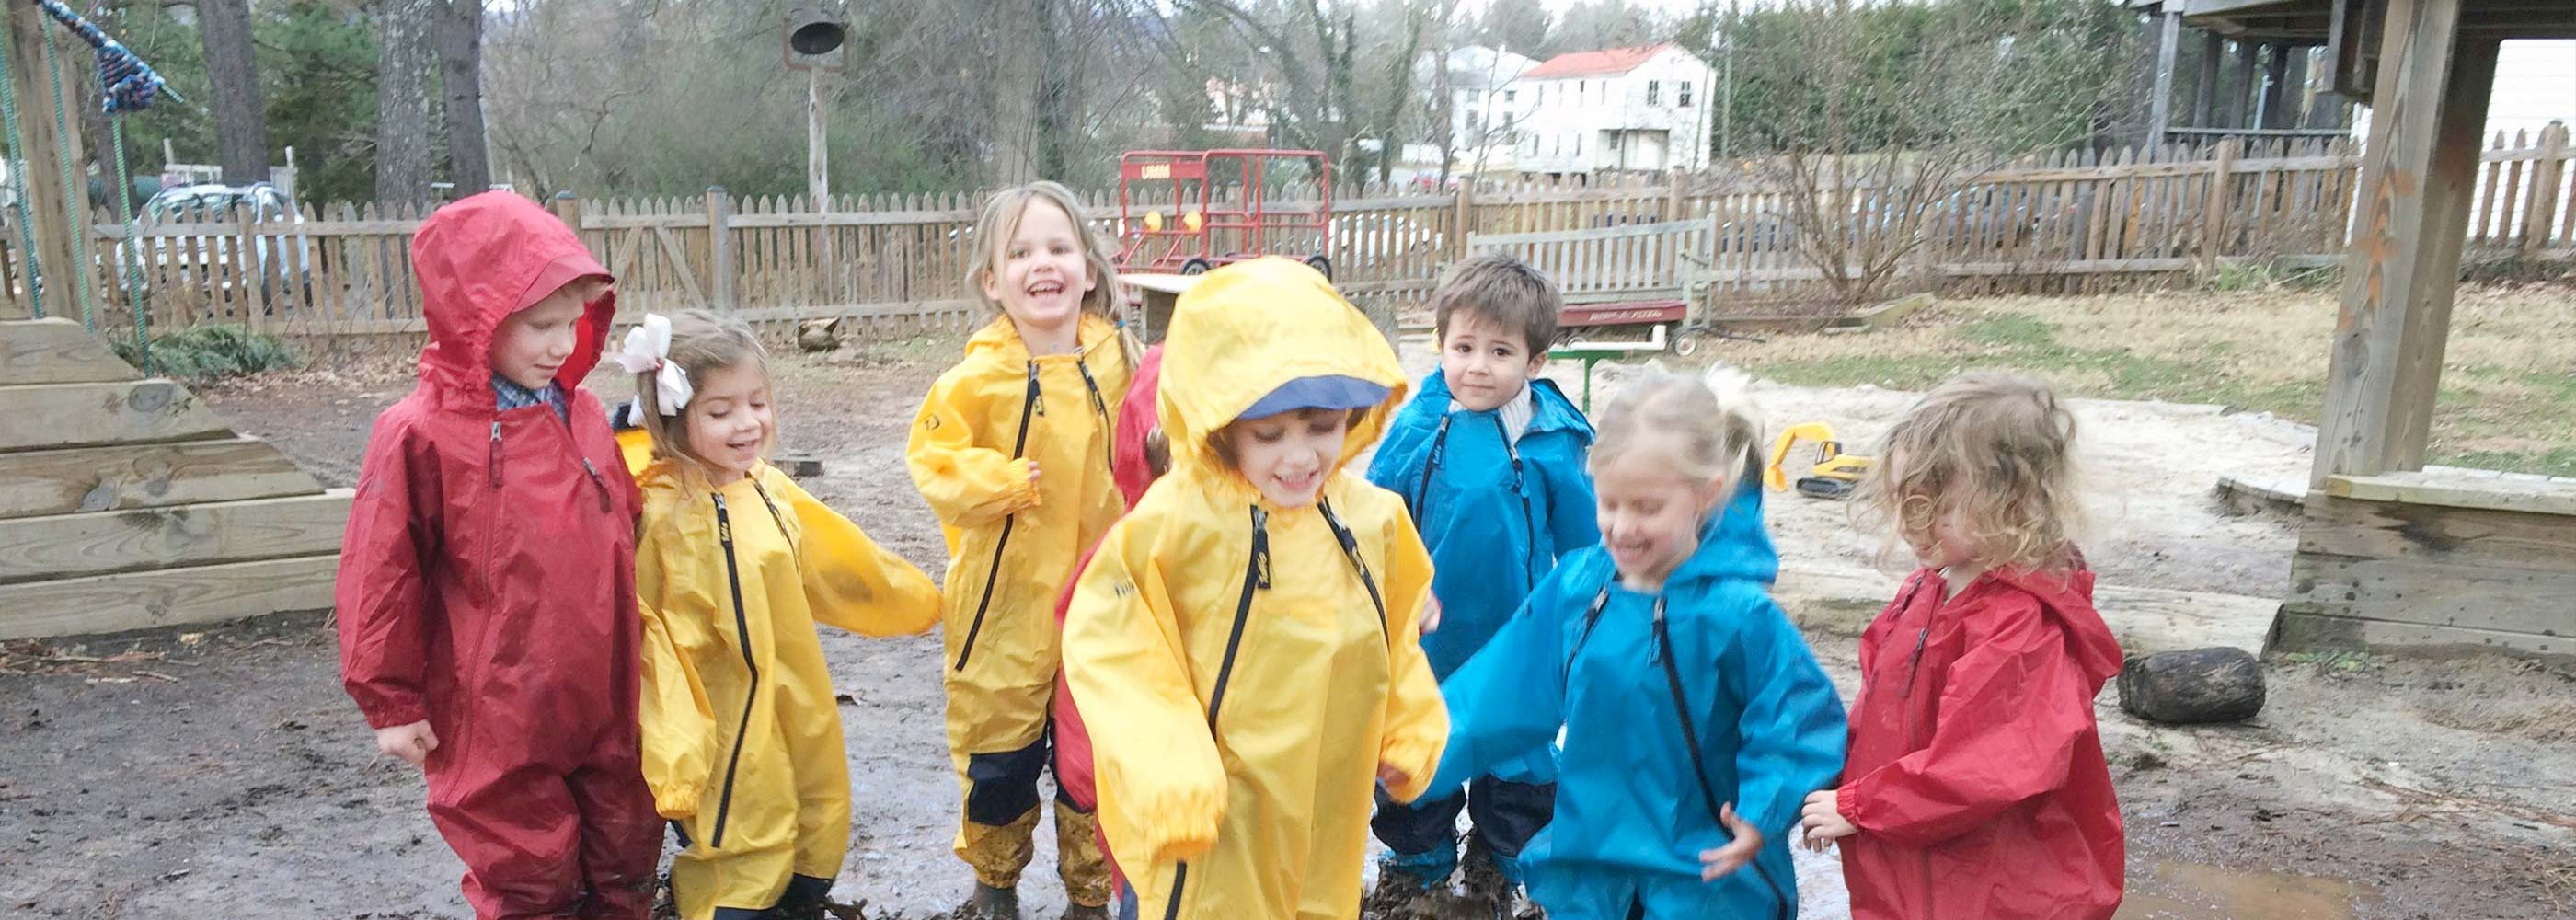 Preschoolers in rain gear laugh and stomp in a mud puddle